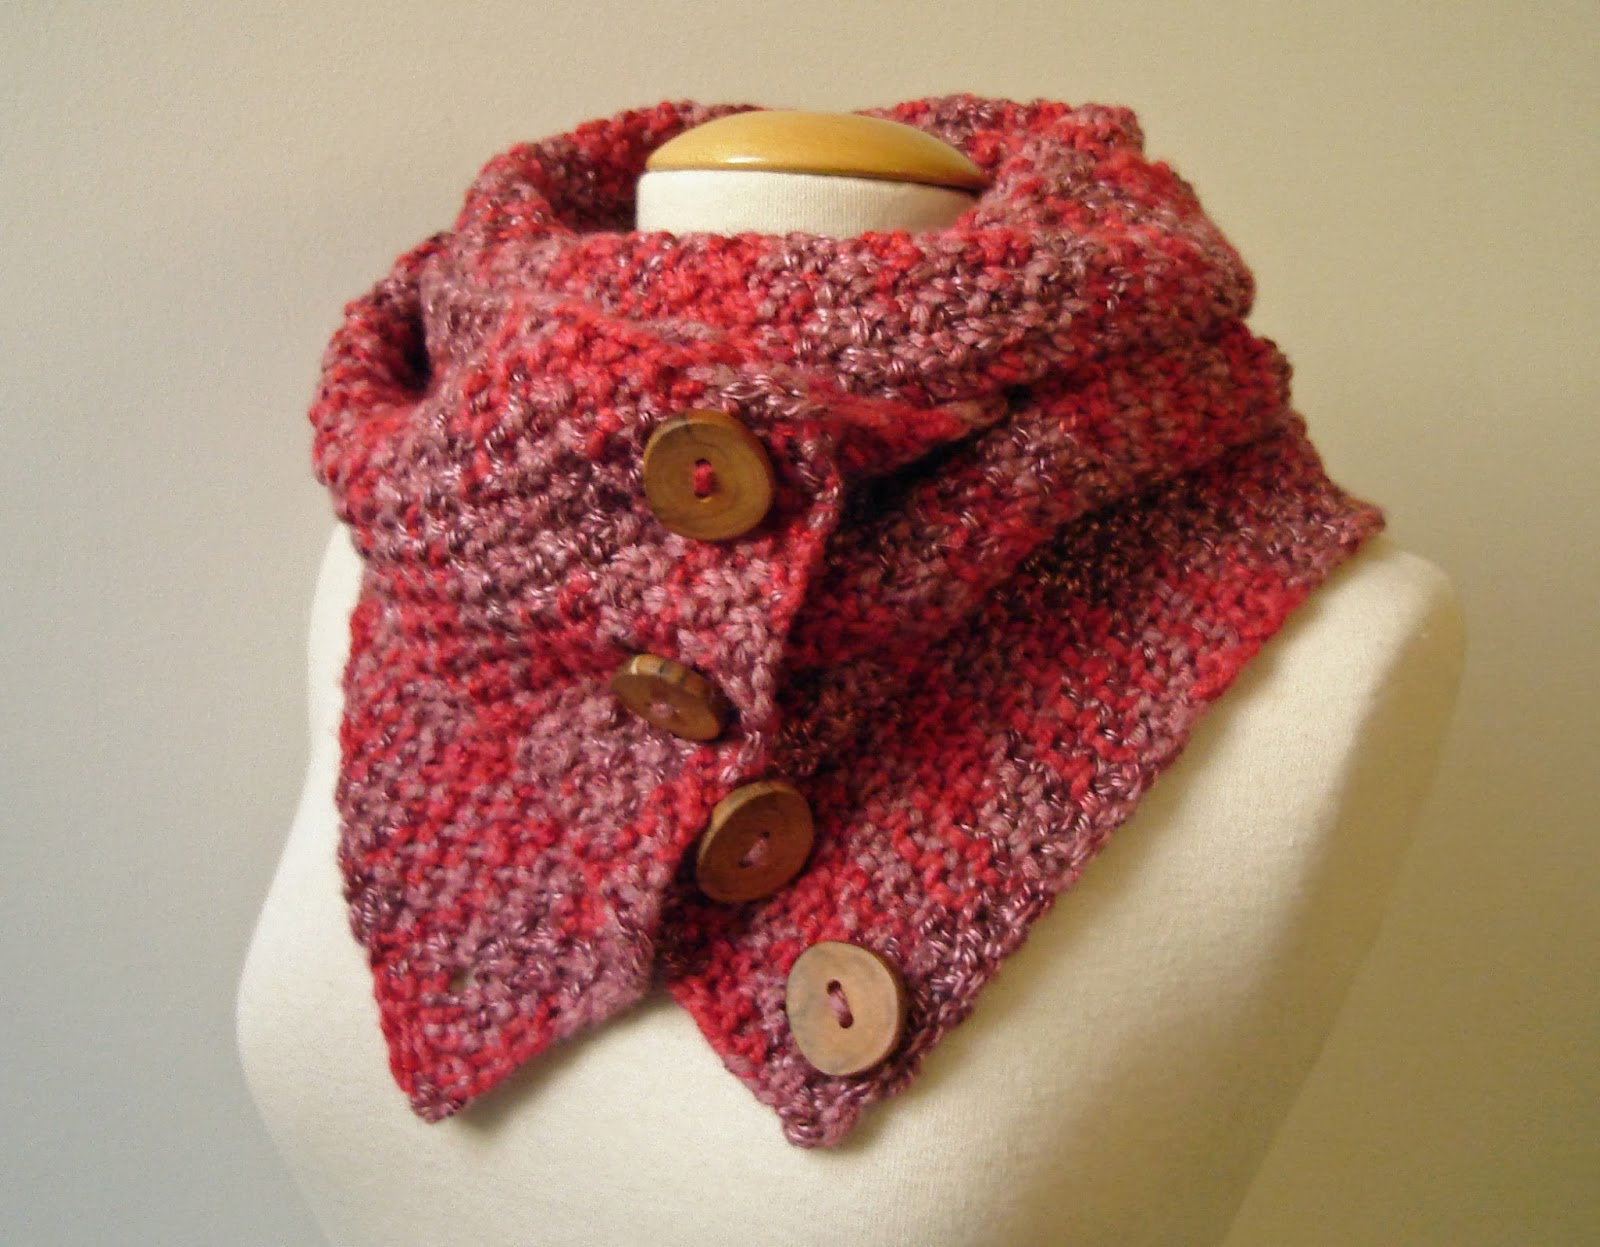 HandmadeHandsome, handmade items and knitting patterns, handgemaakte ...